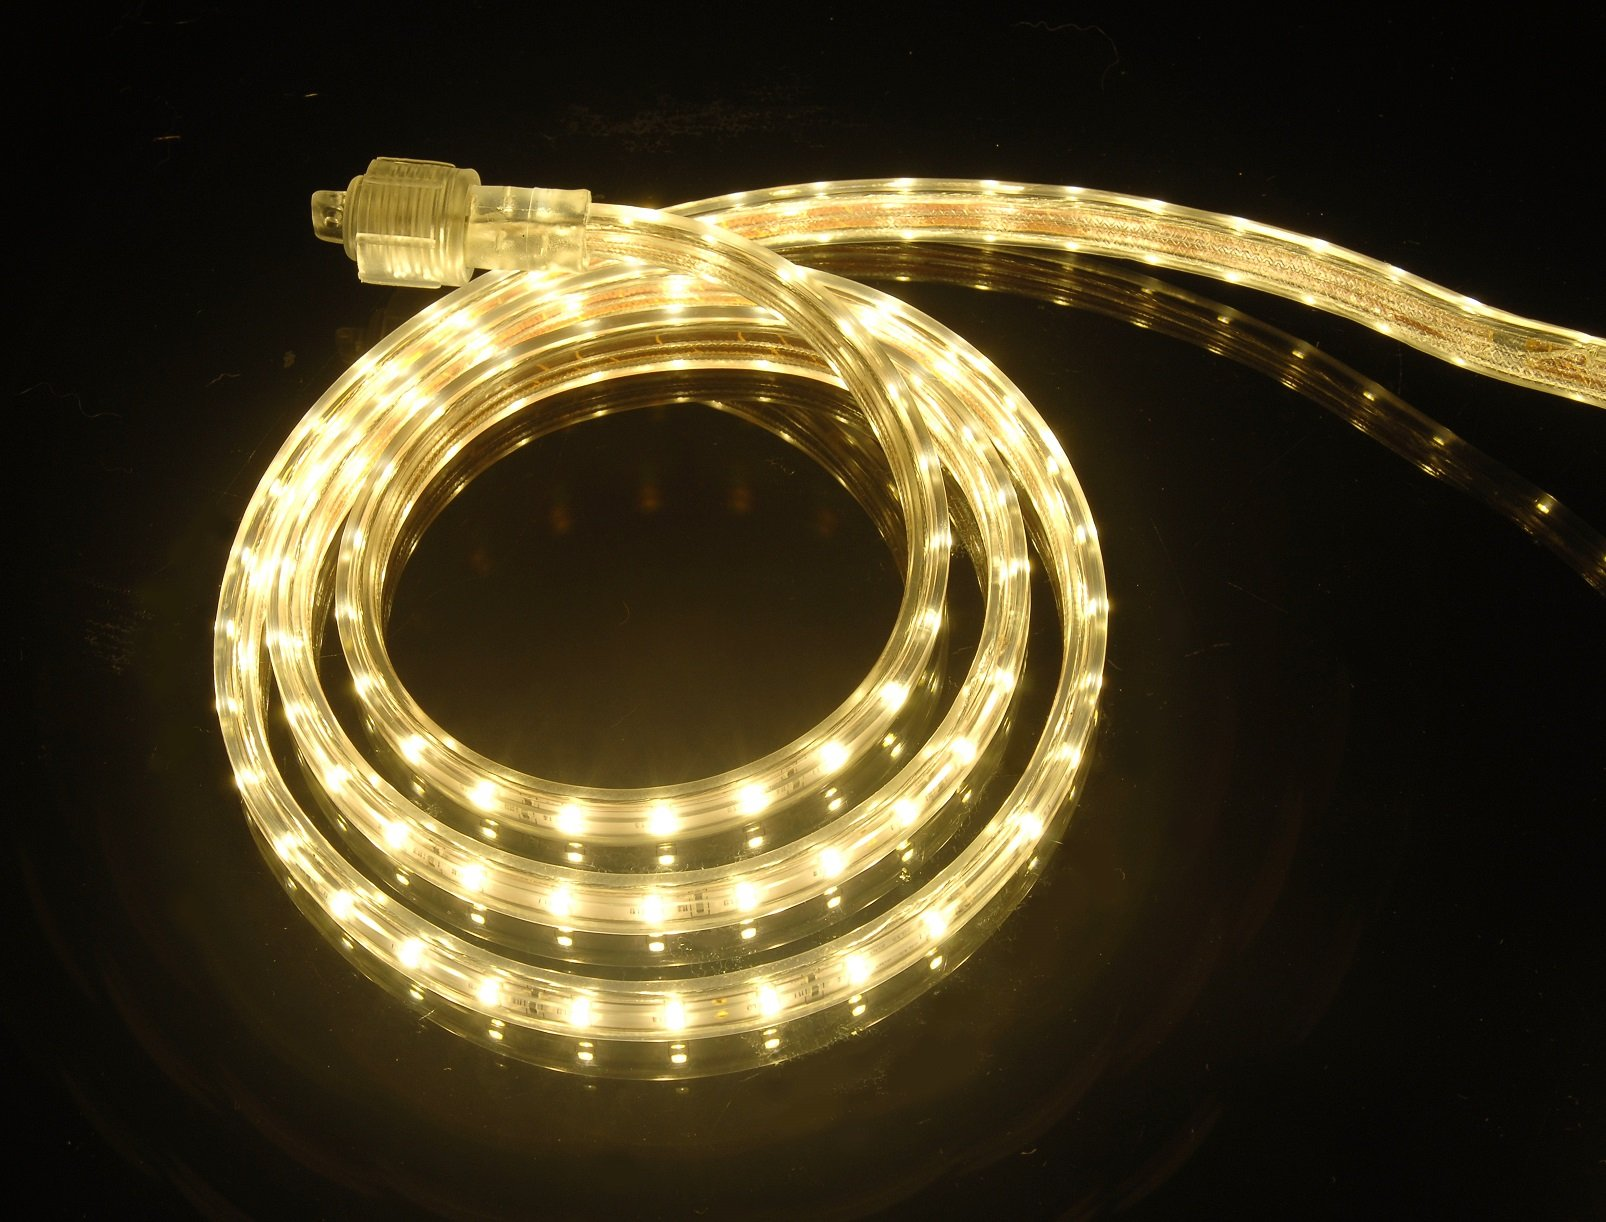 CBConcept UL Listed, 100 Feet, 10100 Lumen, 3000K Warm White, Dimmable, 120V AC Flexible Flat LED Strip Rope Light, 1830 Units 3528 SMD LEDs, Indoor Outdoor Use, Accessories Included, Ready to use by CBconcept